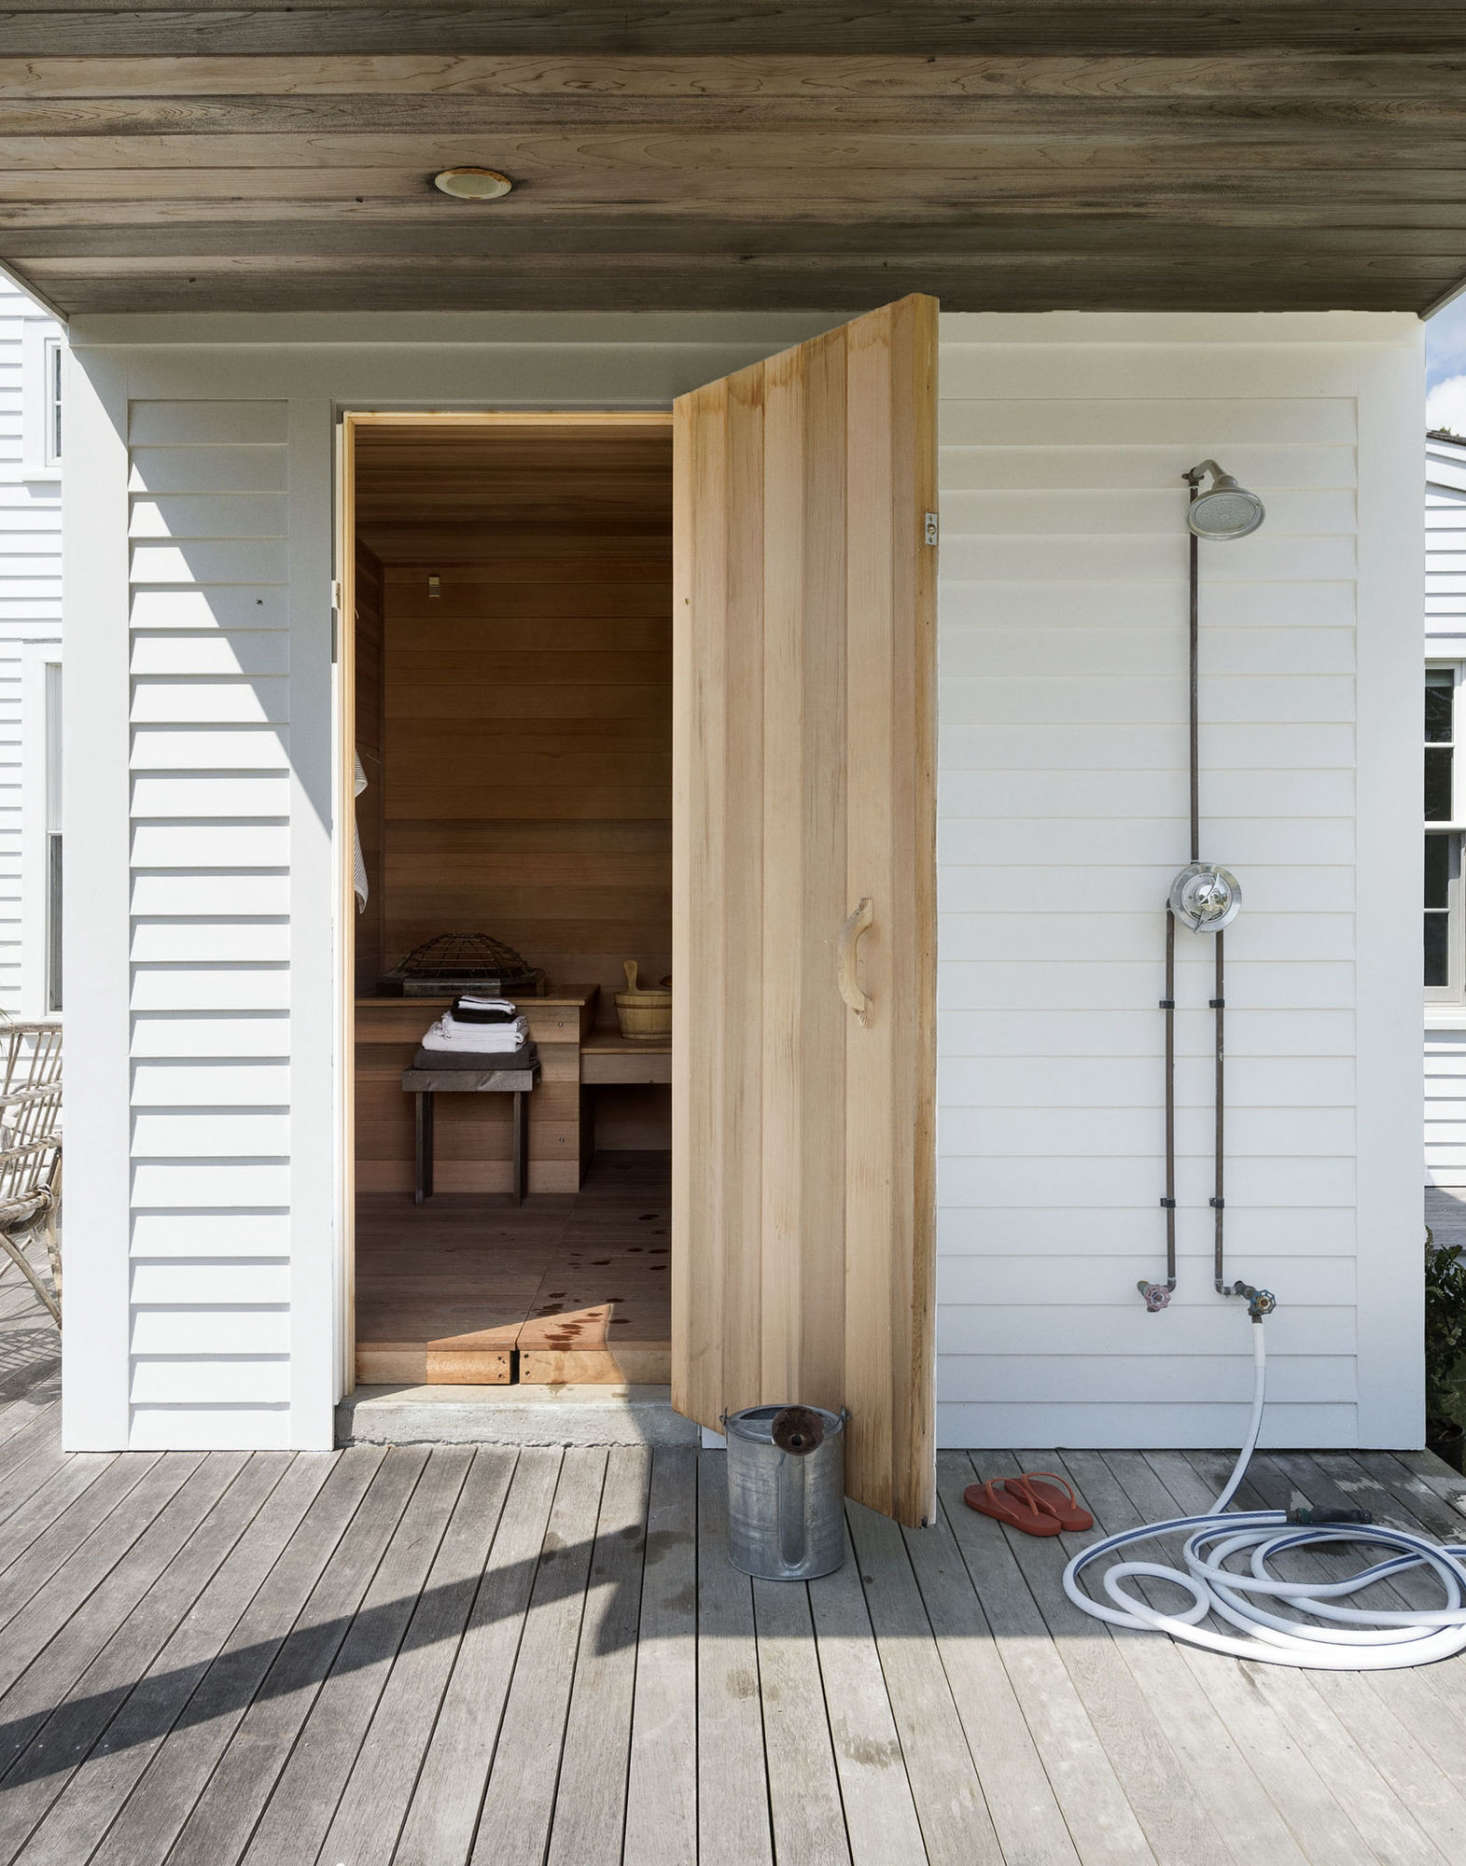 A Maine summer necessity: an unfussy outdoor shower for washing off sunscreen and sand at the end of the day. It can be simple: an exposed pipe and some slatted wood to stand on, as shown here, will do. Photograph by Matthew Williams for the Gardenista book, as seen in  Favorites: Outdoor Showers.